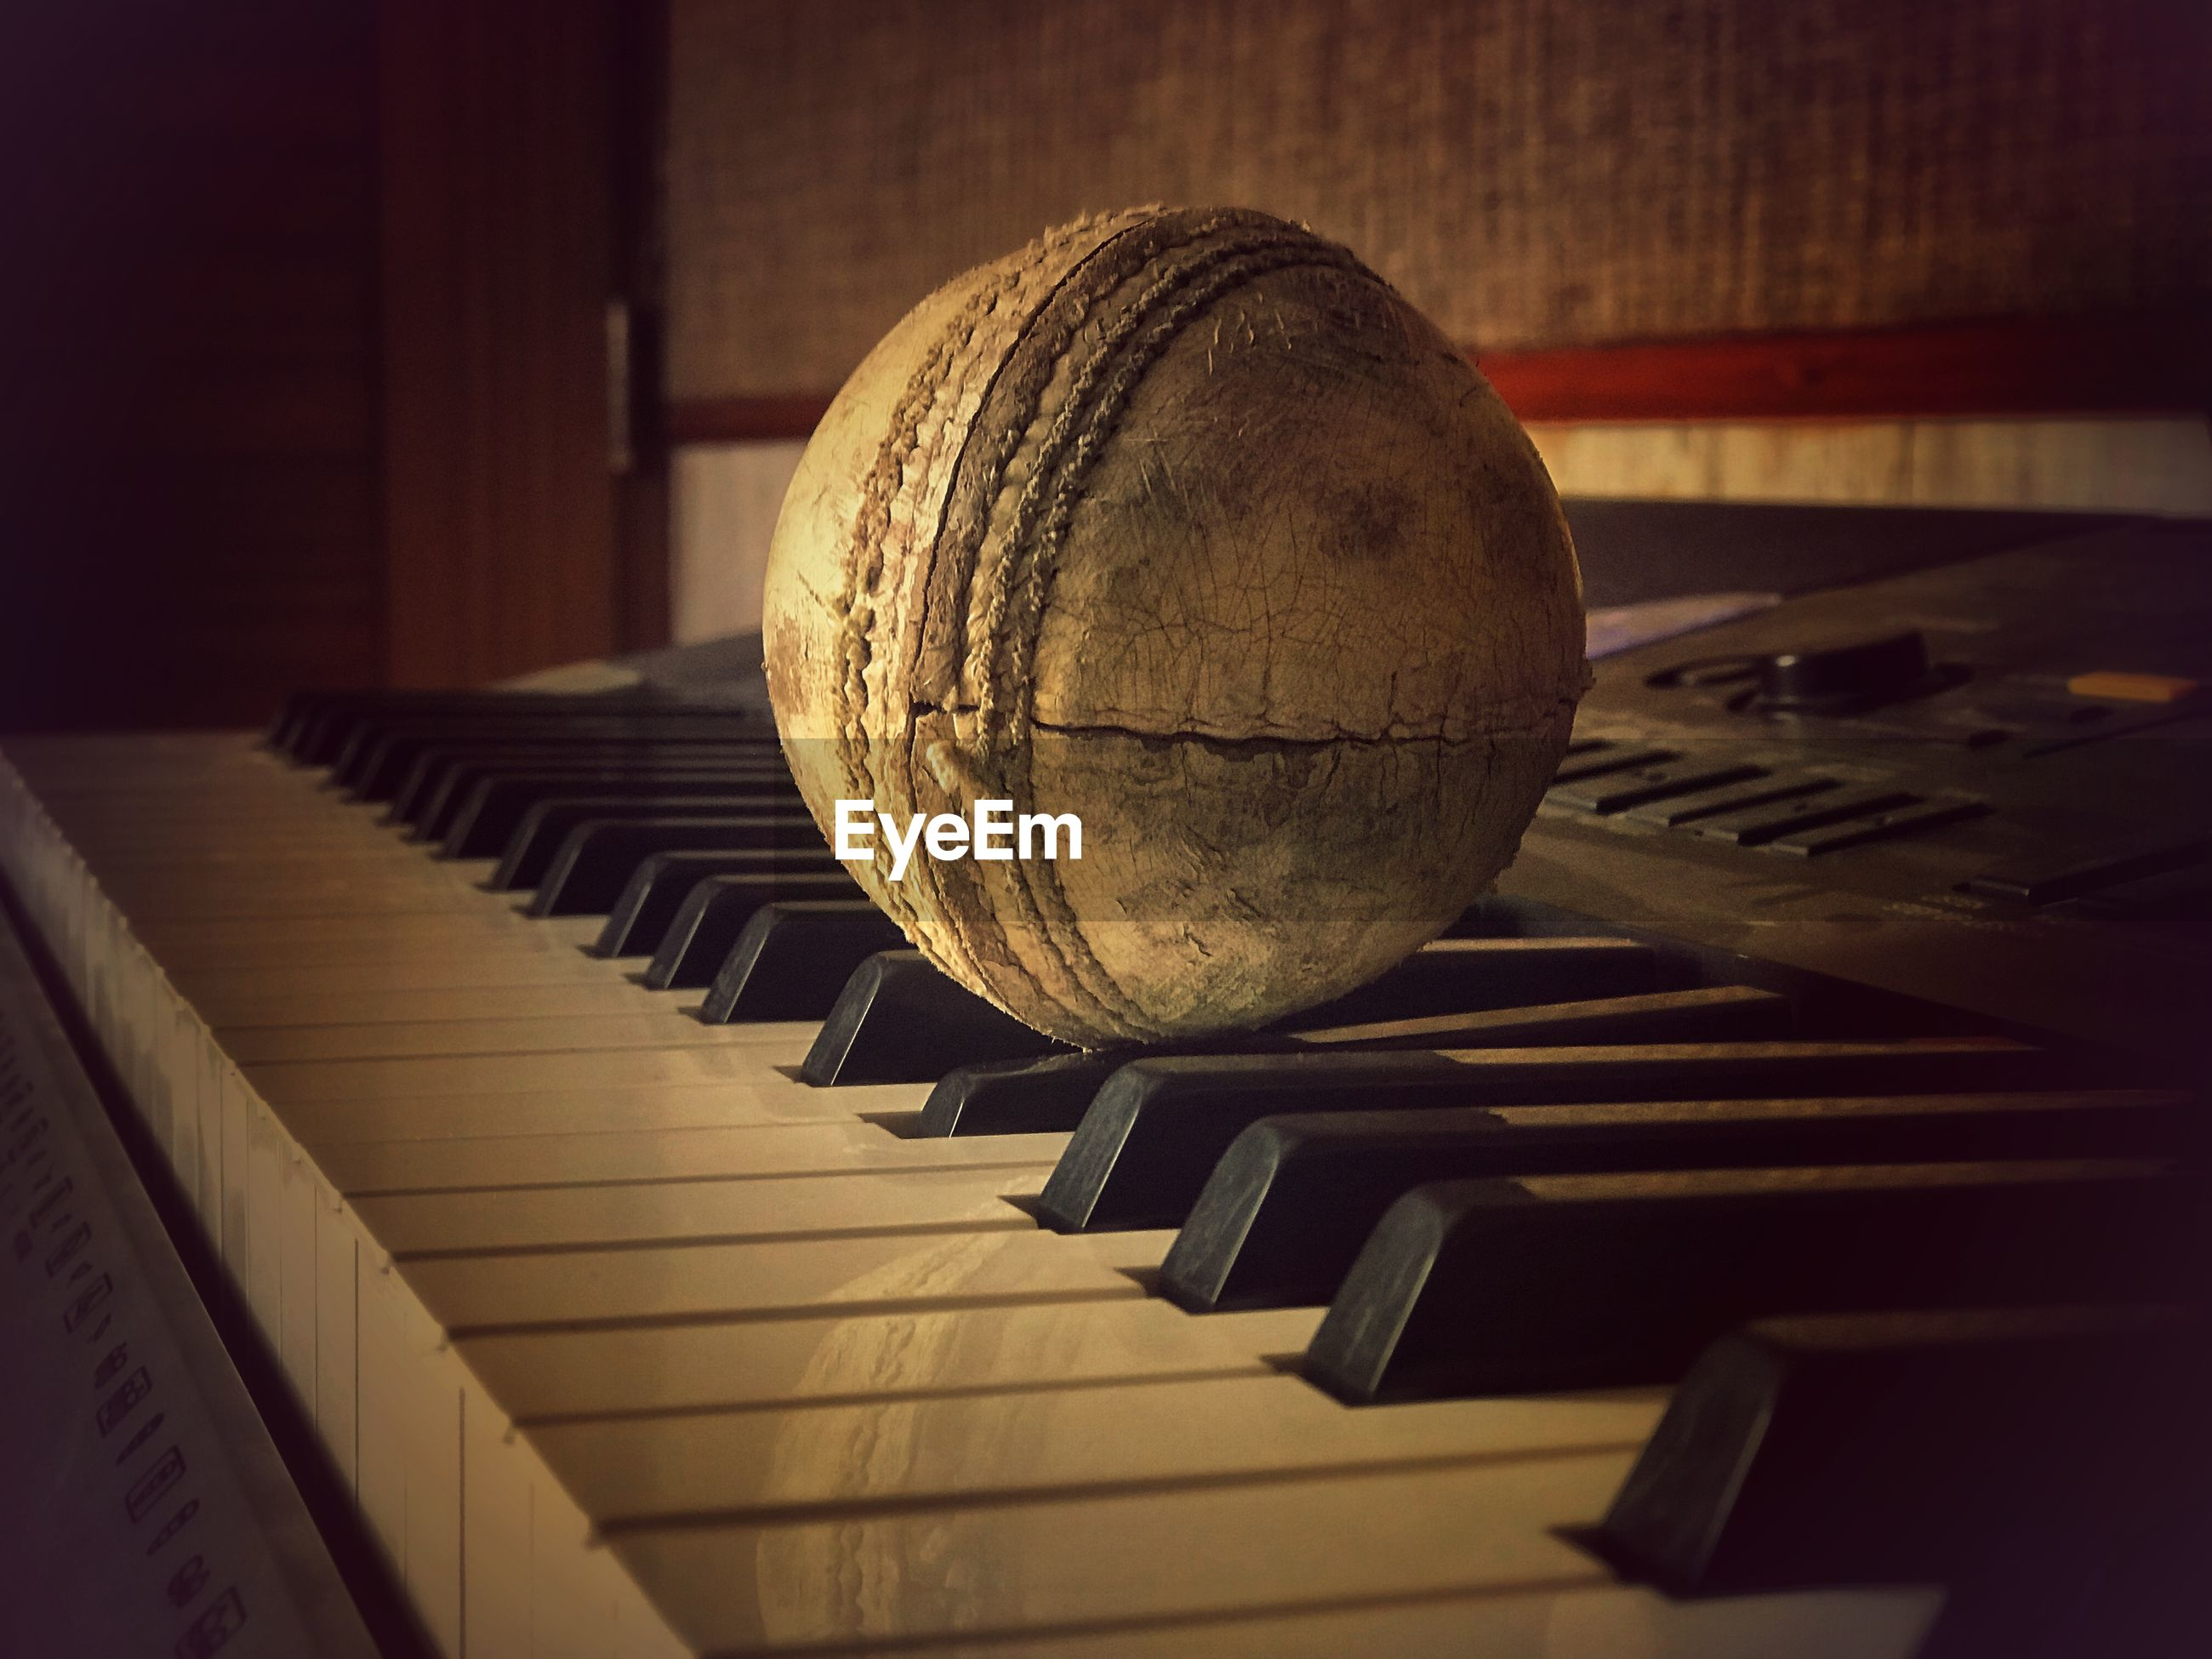 Close-up of ball on piano